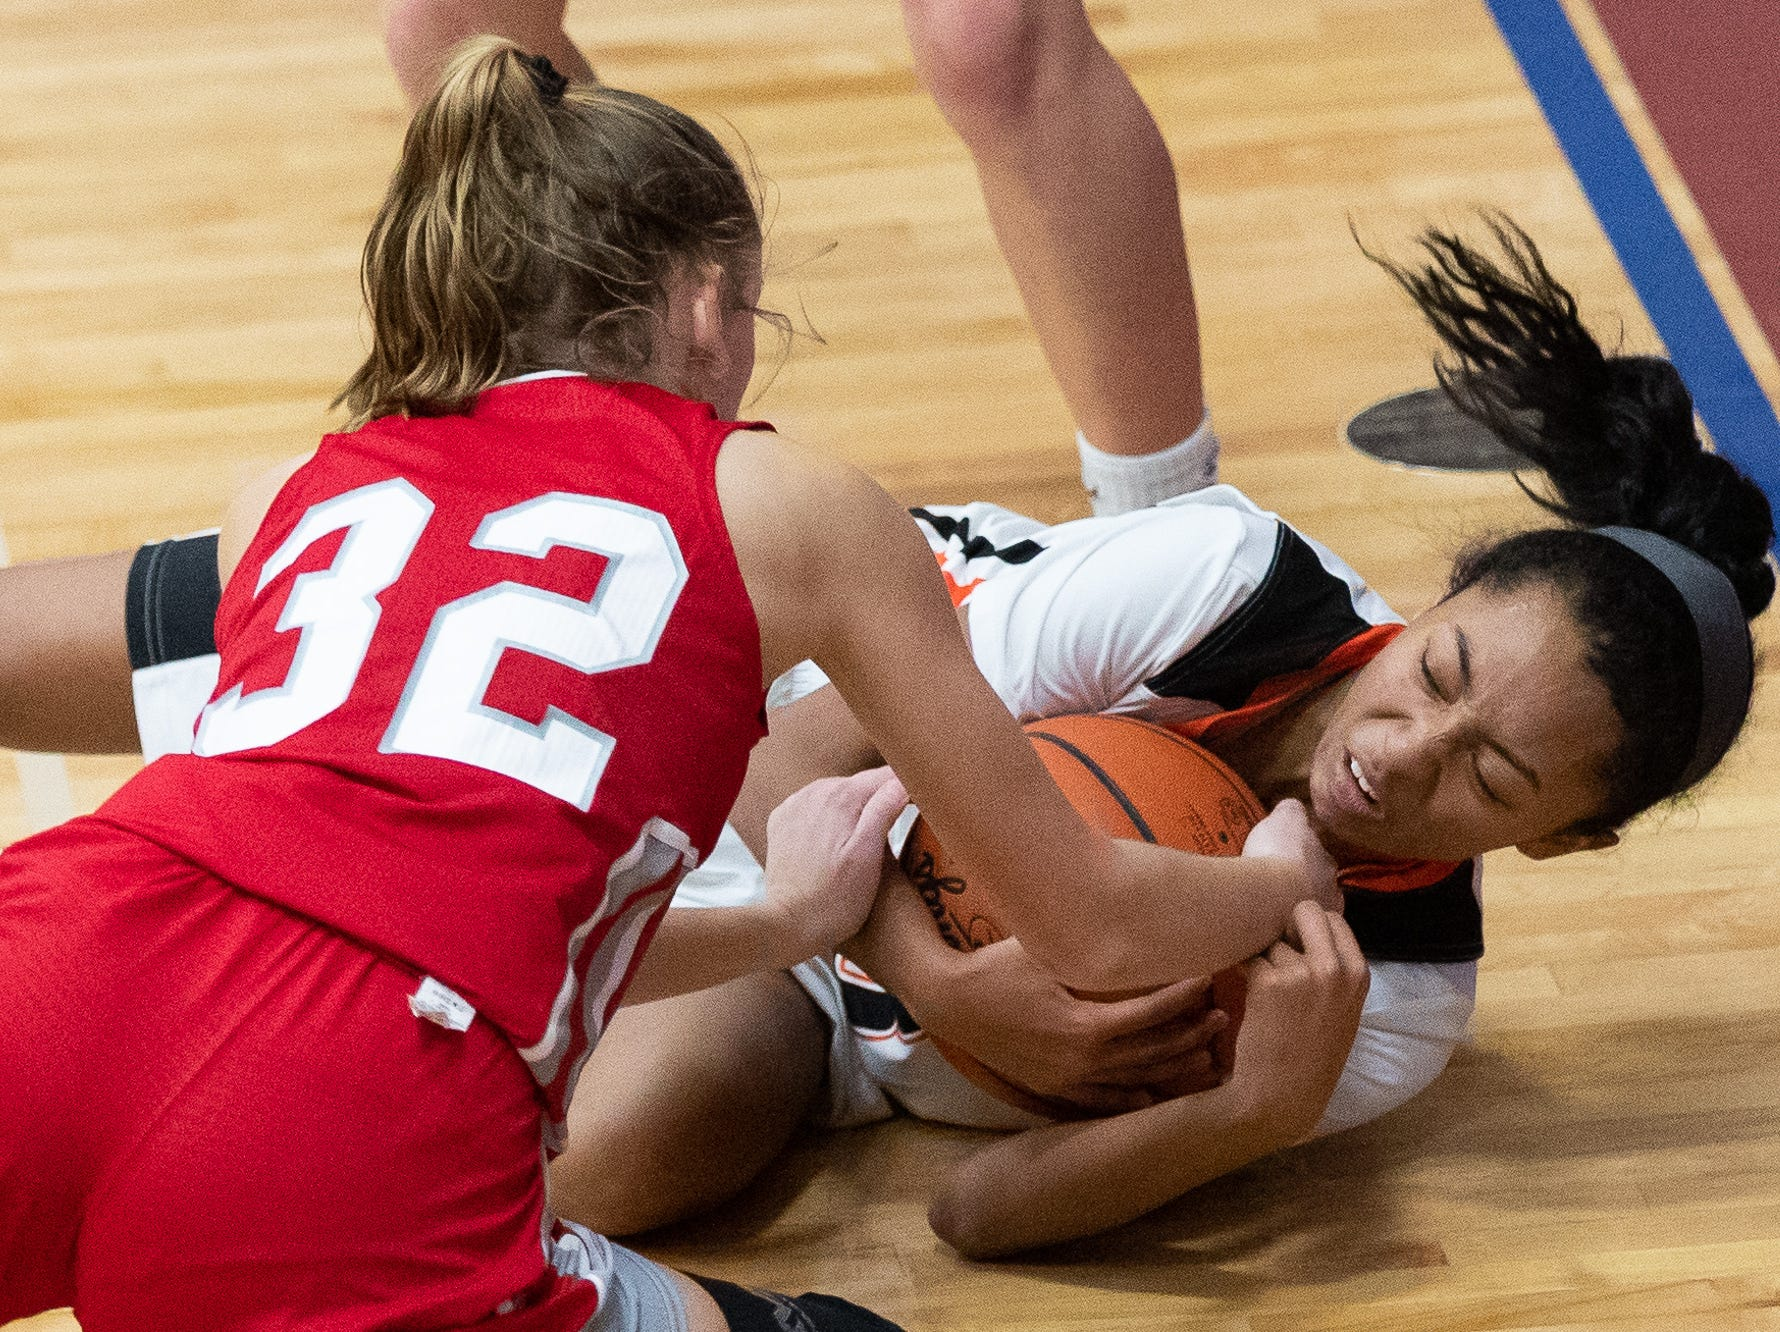 York Suburban's Kiyanna Dowling (3) wrestles with Bermudian Springs' Arden Bealmear (32) for the ball during the consolation game between Bermudian Springs and York Suburban during the New Oxford Girls Basketball Tip-Off Tournament, Saturday, Dec. 8, 2018, in New Oxford. The Bermudian Springs Lady Eagles defeated the York Suburban Lady Trojans 60-58.